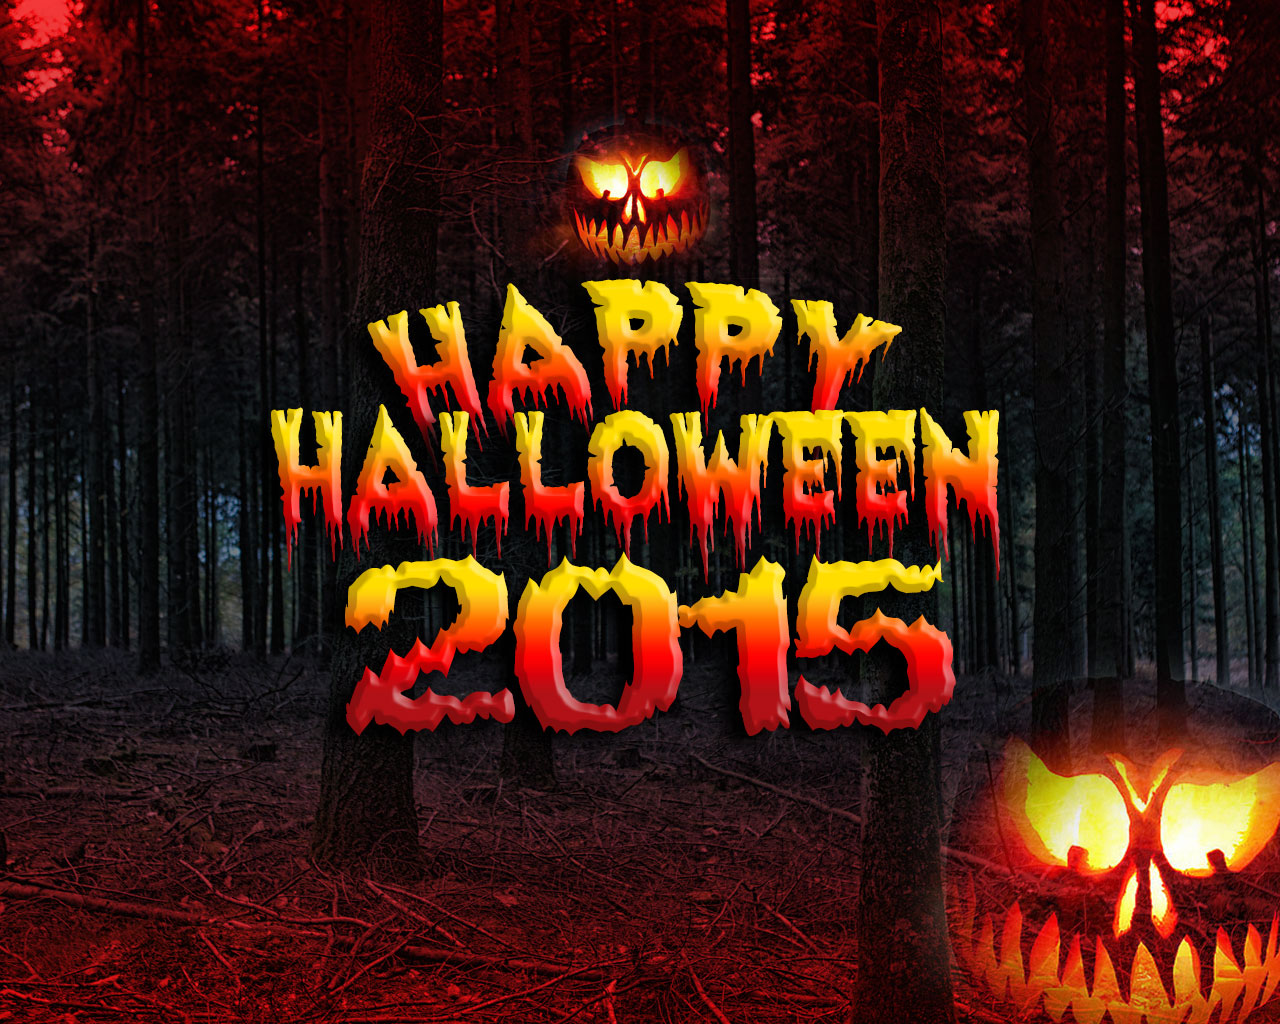 Scary Happy Halloween 2015 Images Backgrounds Wallpapers Ideas 1280x1024